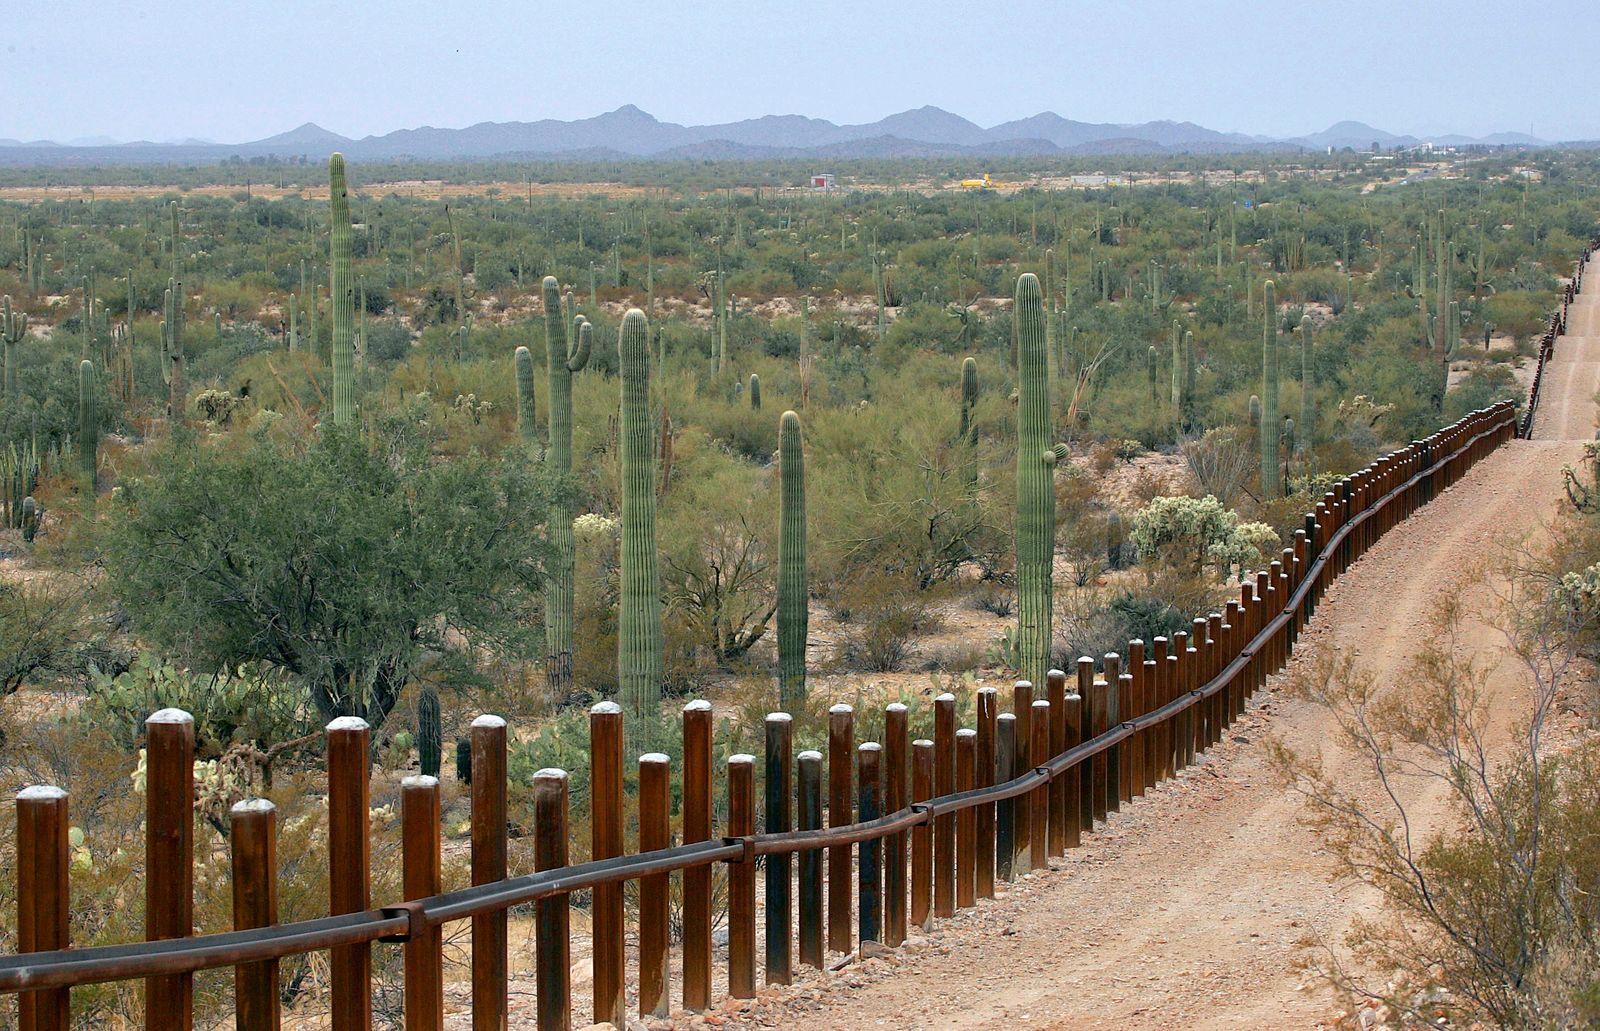 FILE - This Feb. 17, 2006 file photo shows the international border line made up of bollards: irregular, concrete-filled steel poles, seperating Mexico, left from the United States, in the Organ Pipe National Monument near Lukeville, Ariz. The federal government plans on replacing barriers through 100 miles of the southern border in California and Arizona, including through a this national monument and a wildlife refuge, according to government documents and environmental advocates. The Department of Homeland Security on Tuesday waived environmental and dozens of other laws to build more barriers along the southern border. (AP Photo/Matt York, File)